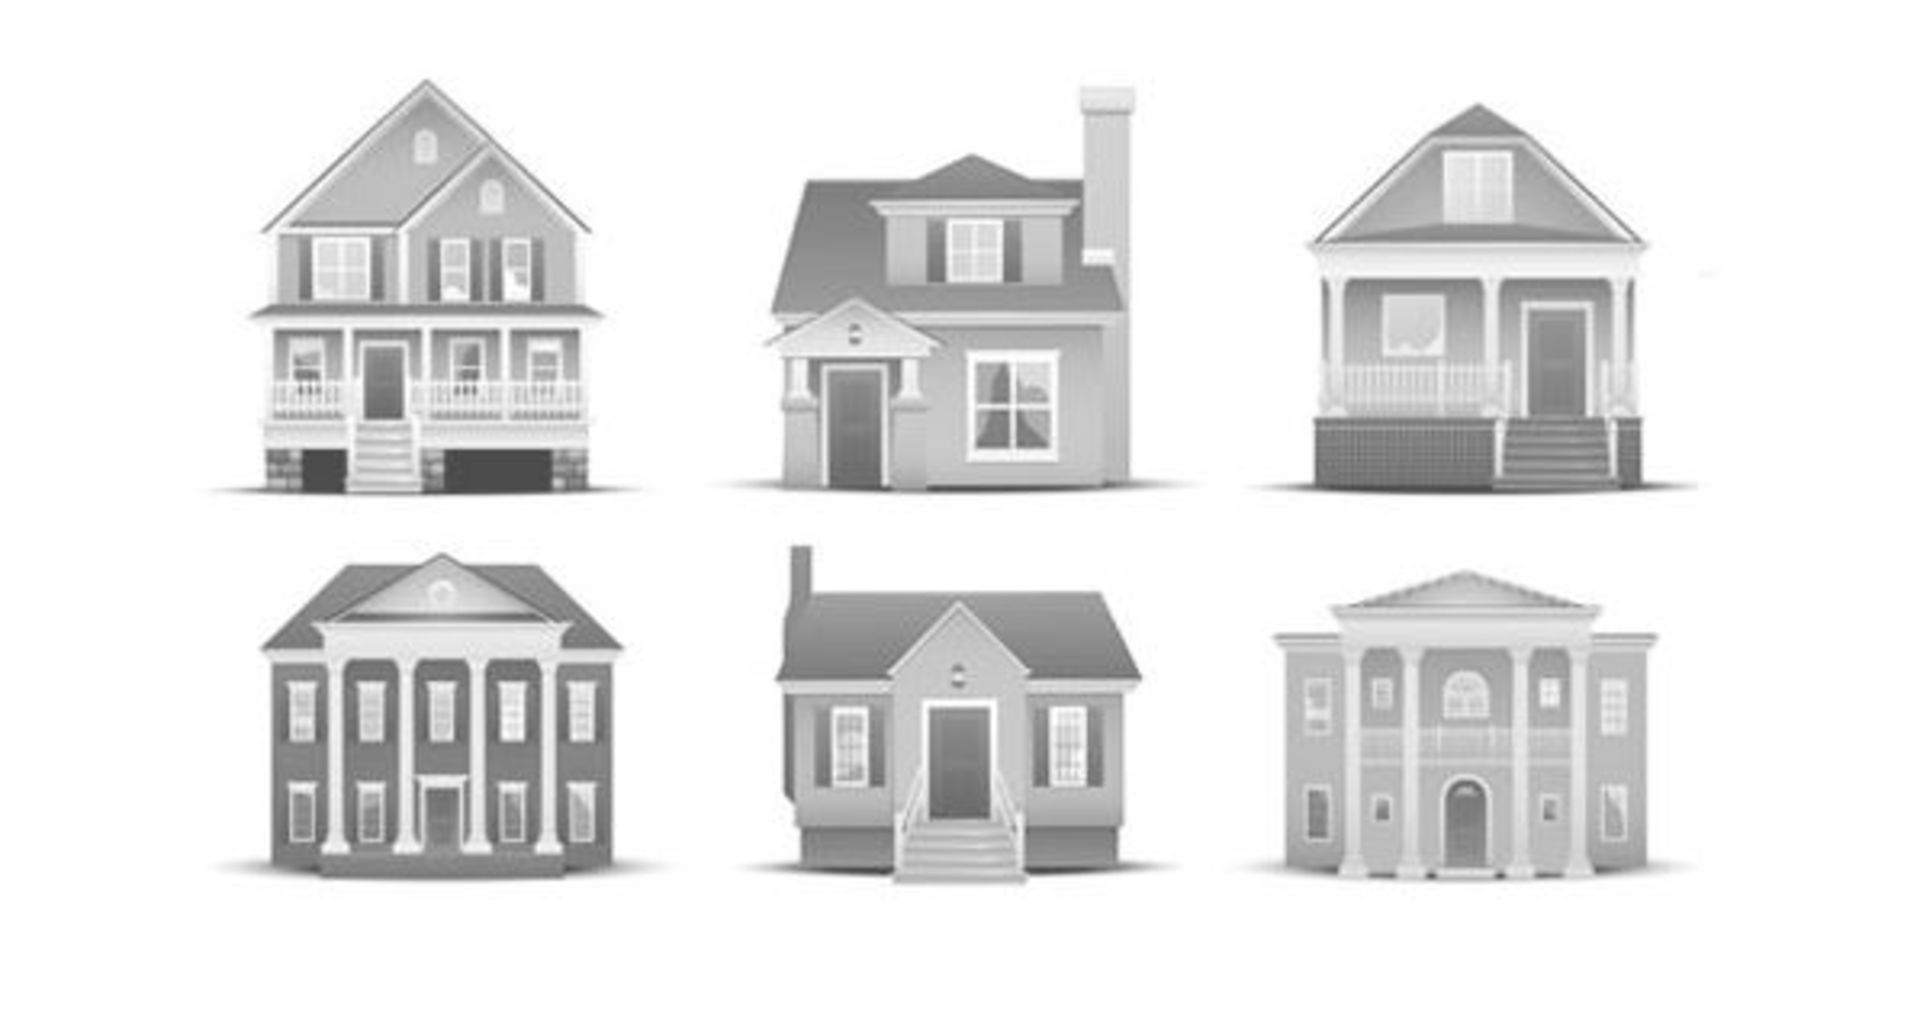 What style of home do you like?